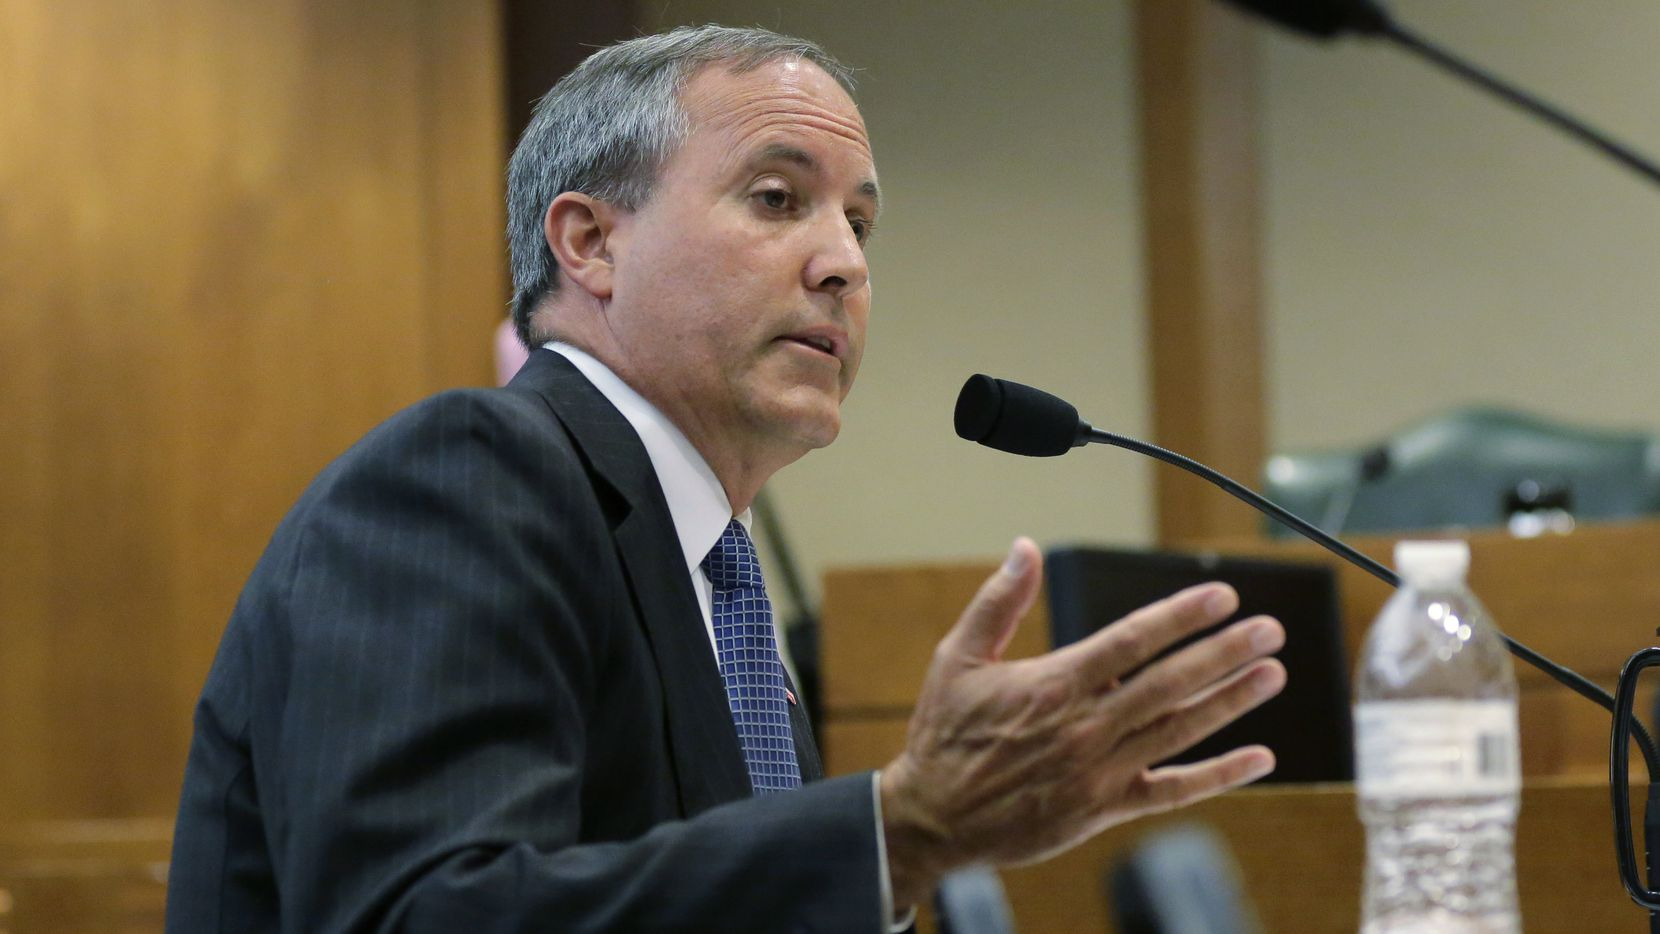 Political consultants say Texas Attorney General Ken Paxton  has a tough choice between playing the waiting game on his securities fraud indictments and pushing for an expedited trial that could be a liability for his party during election season.